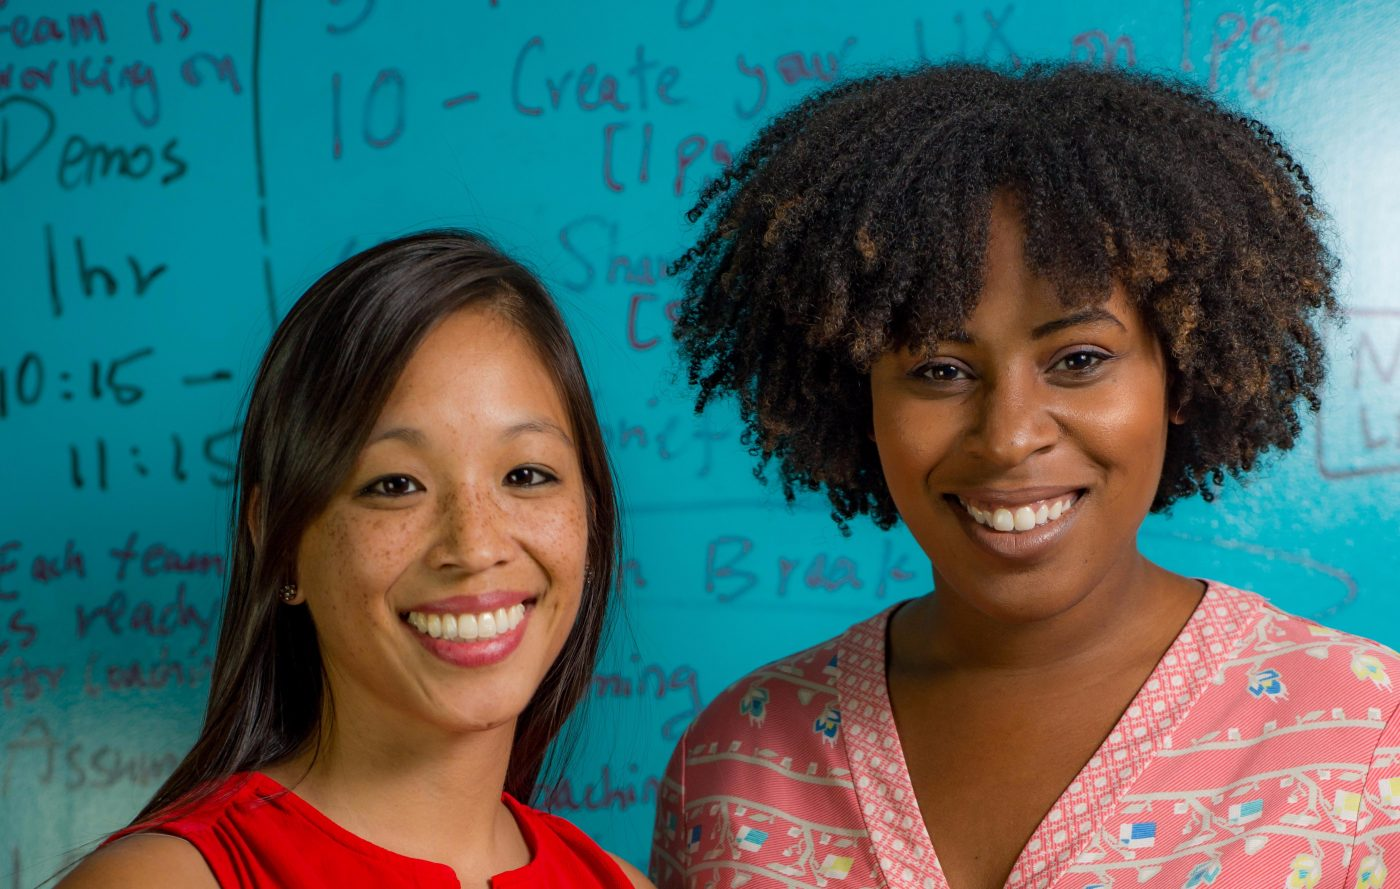 Meet Alina and Ashley | Mindright - MindRight empowers youth of color to heal from trauma from systemic oppression.